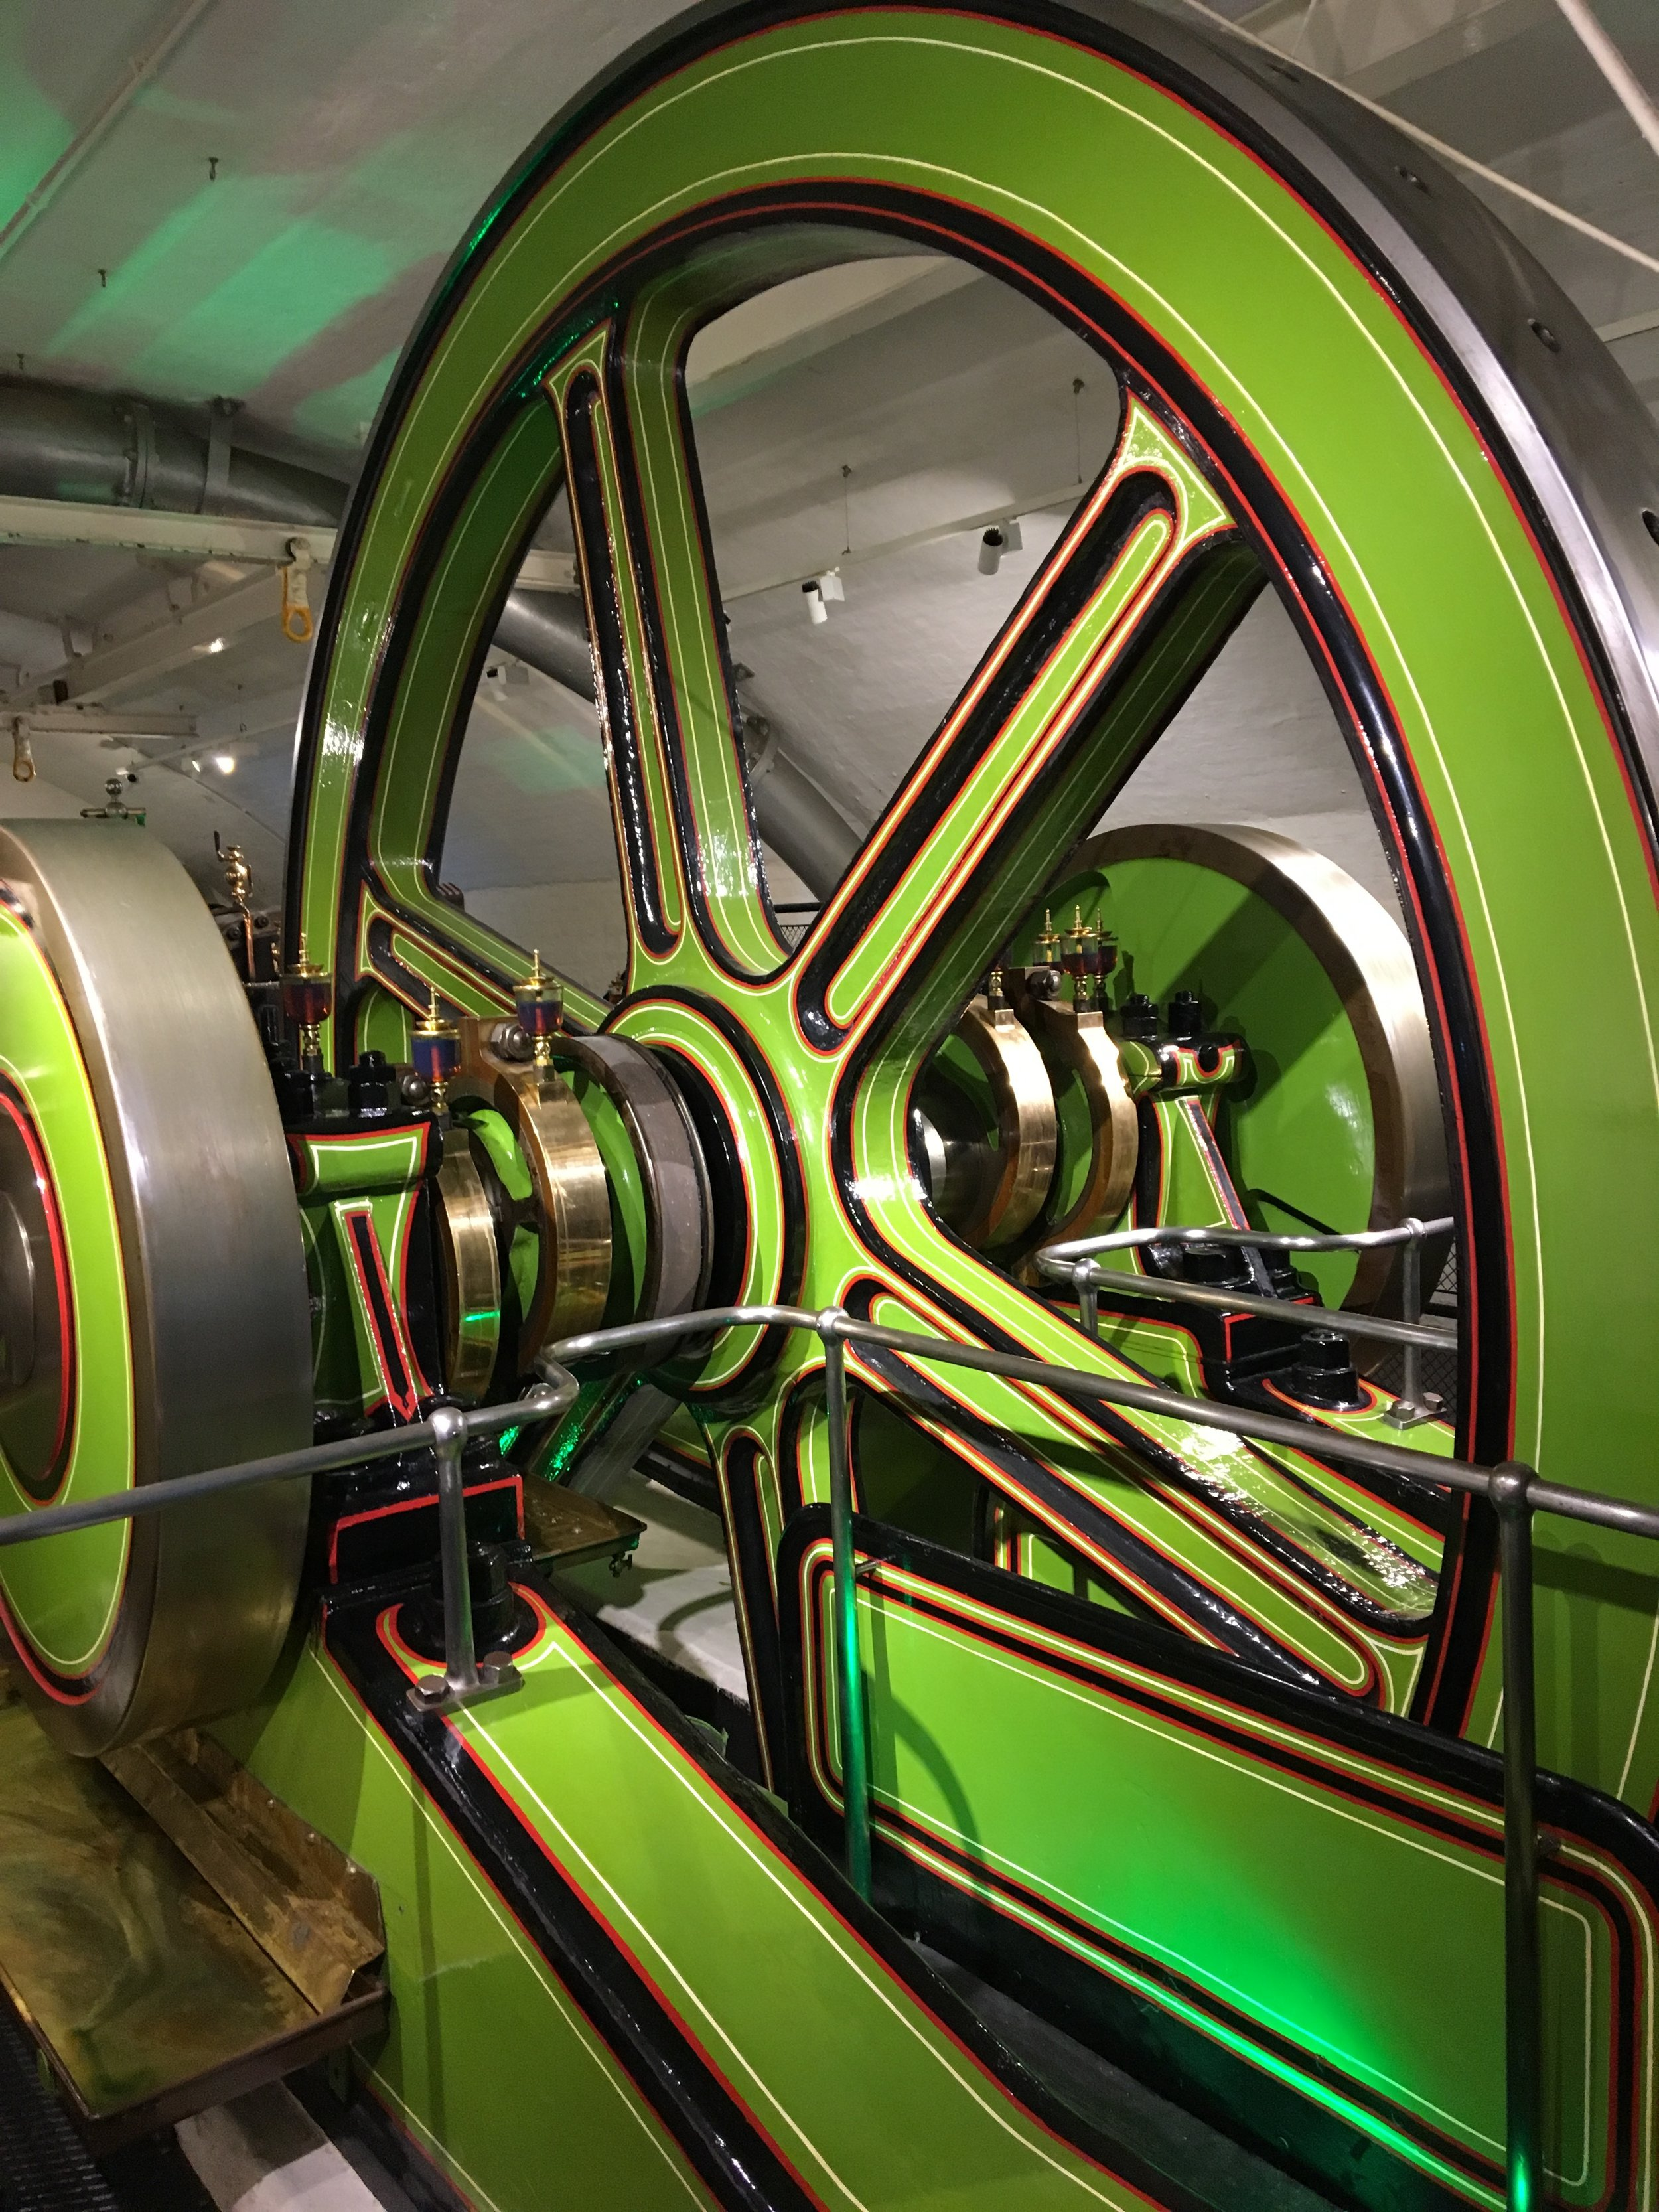 Part of the old steam engines in the Tower Bridge - I loved that green. So unexpected.